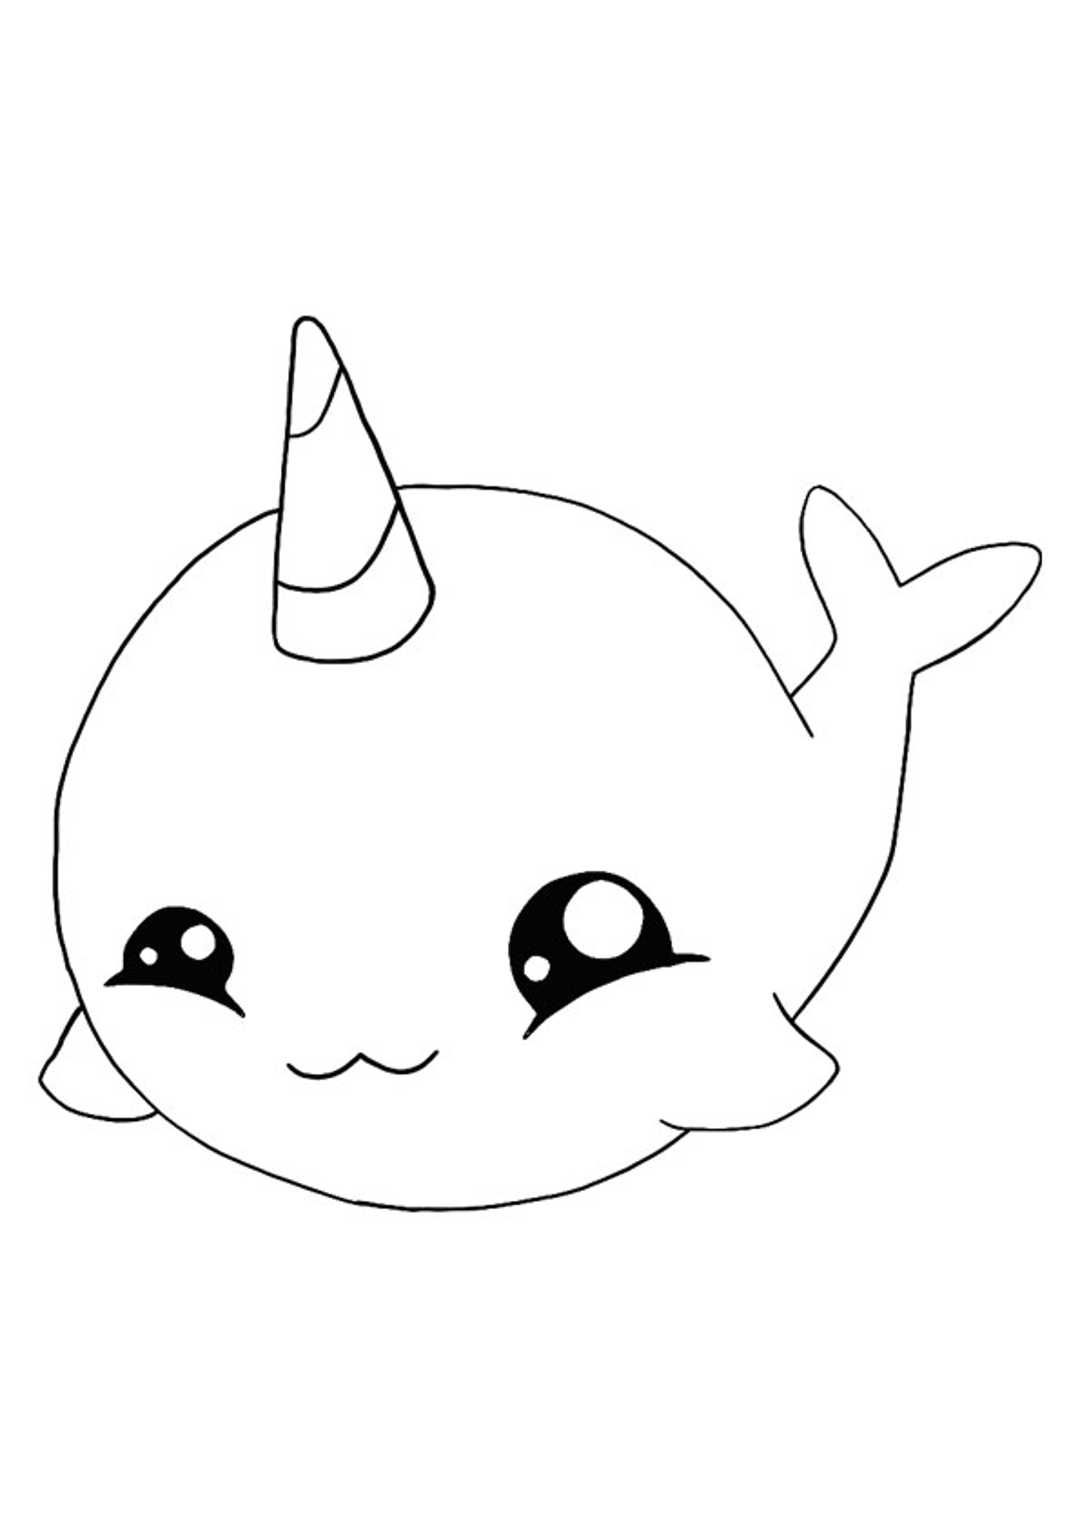 Kawaii Unicorn Coloring Page Unicorn Coloring Pages Mermaid Coloring Pages Emoji Coloring Pages